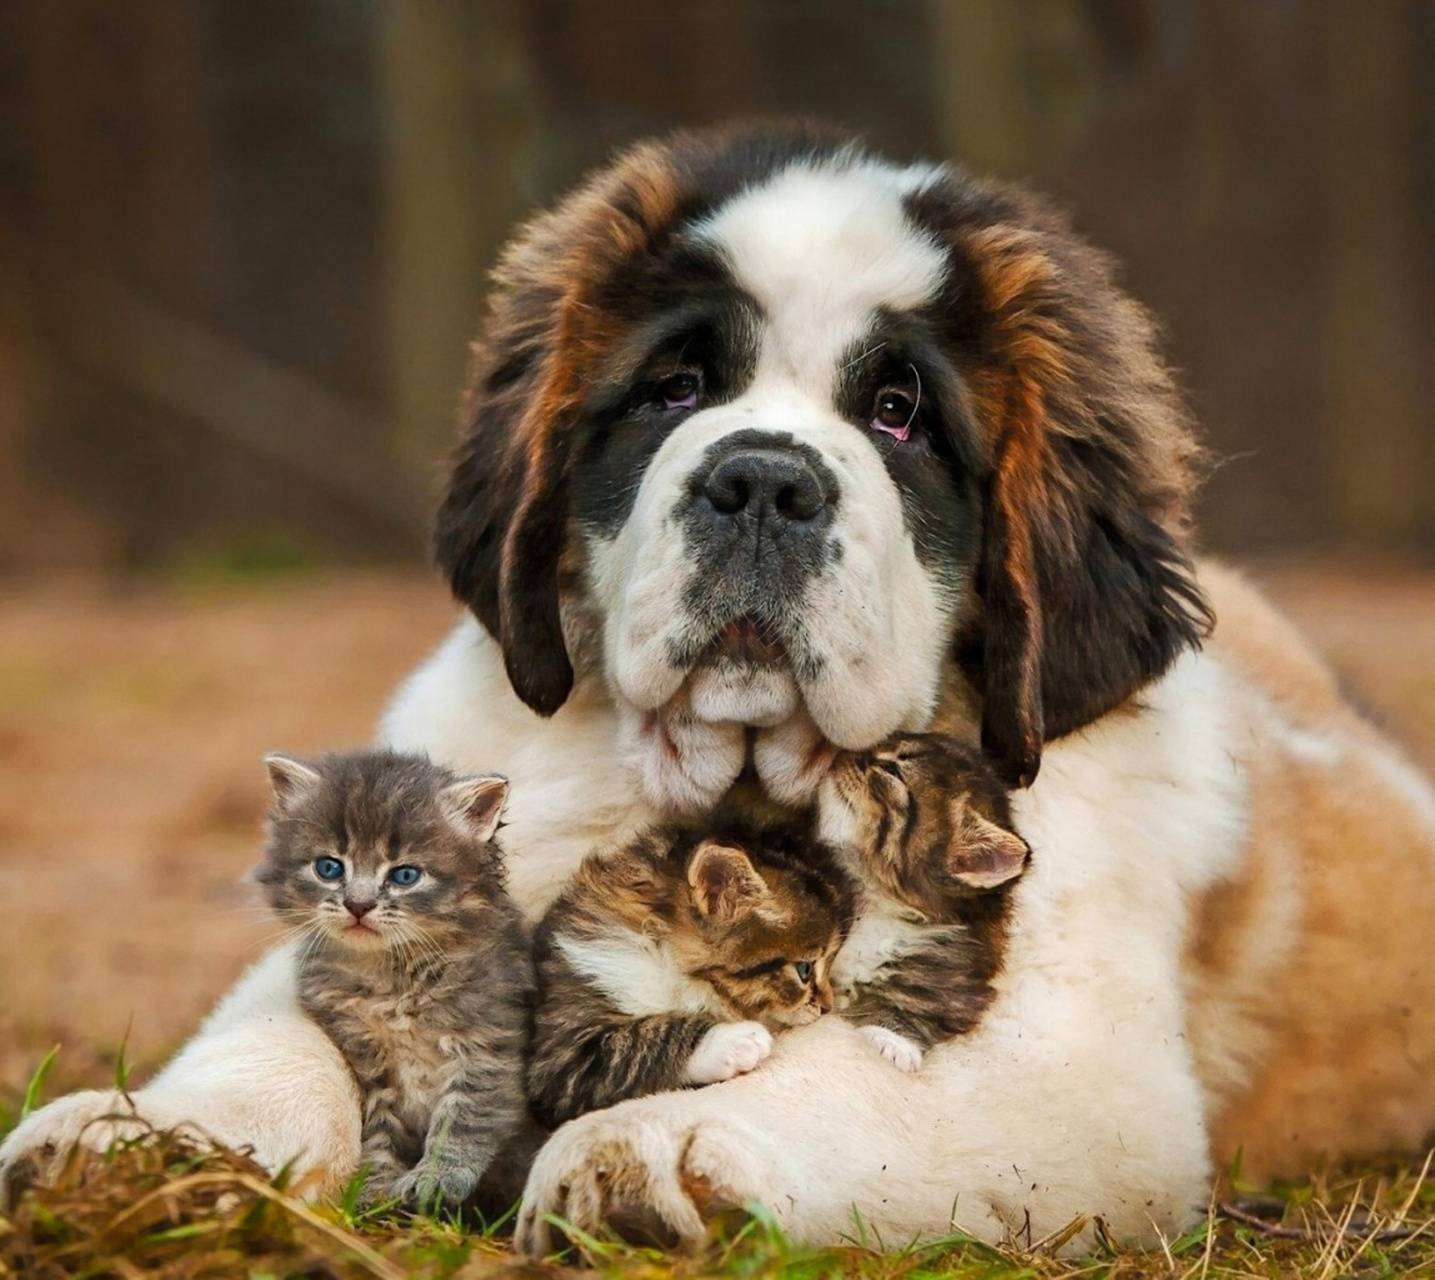 Dog and small Cats